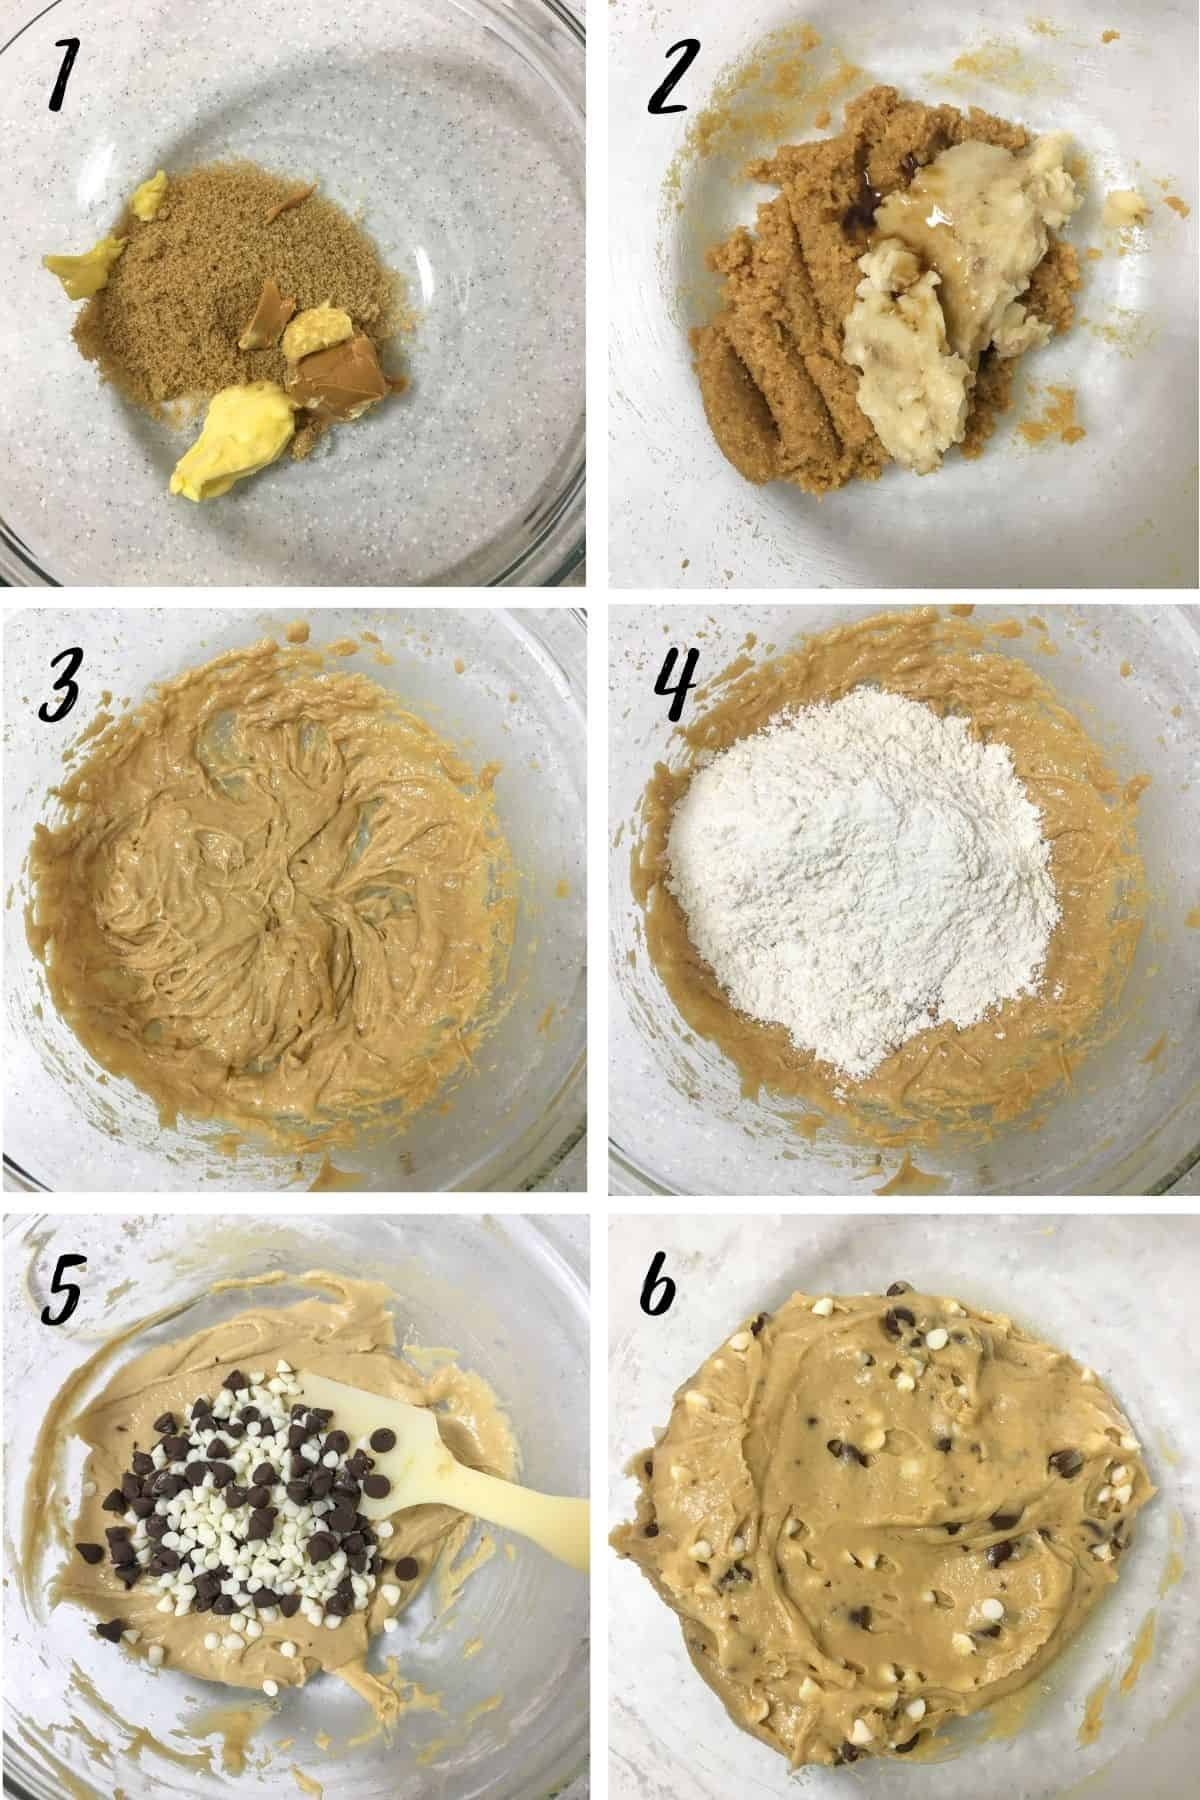 A poster of 6 images showing how to mix a peanut butter banana chocolate chip cookie dough